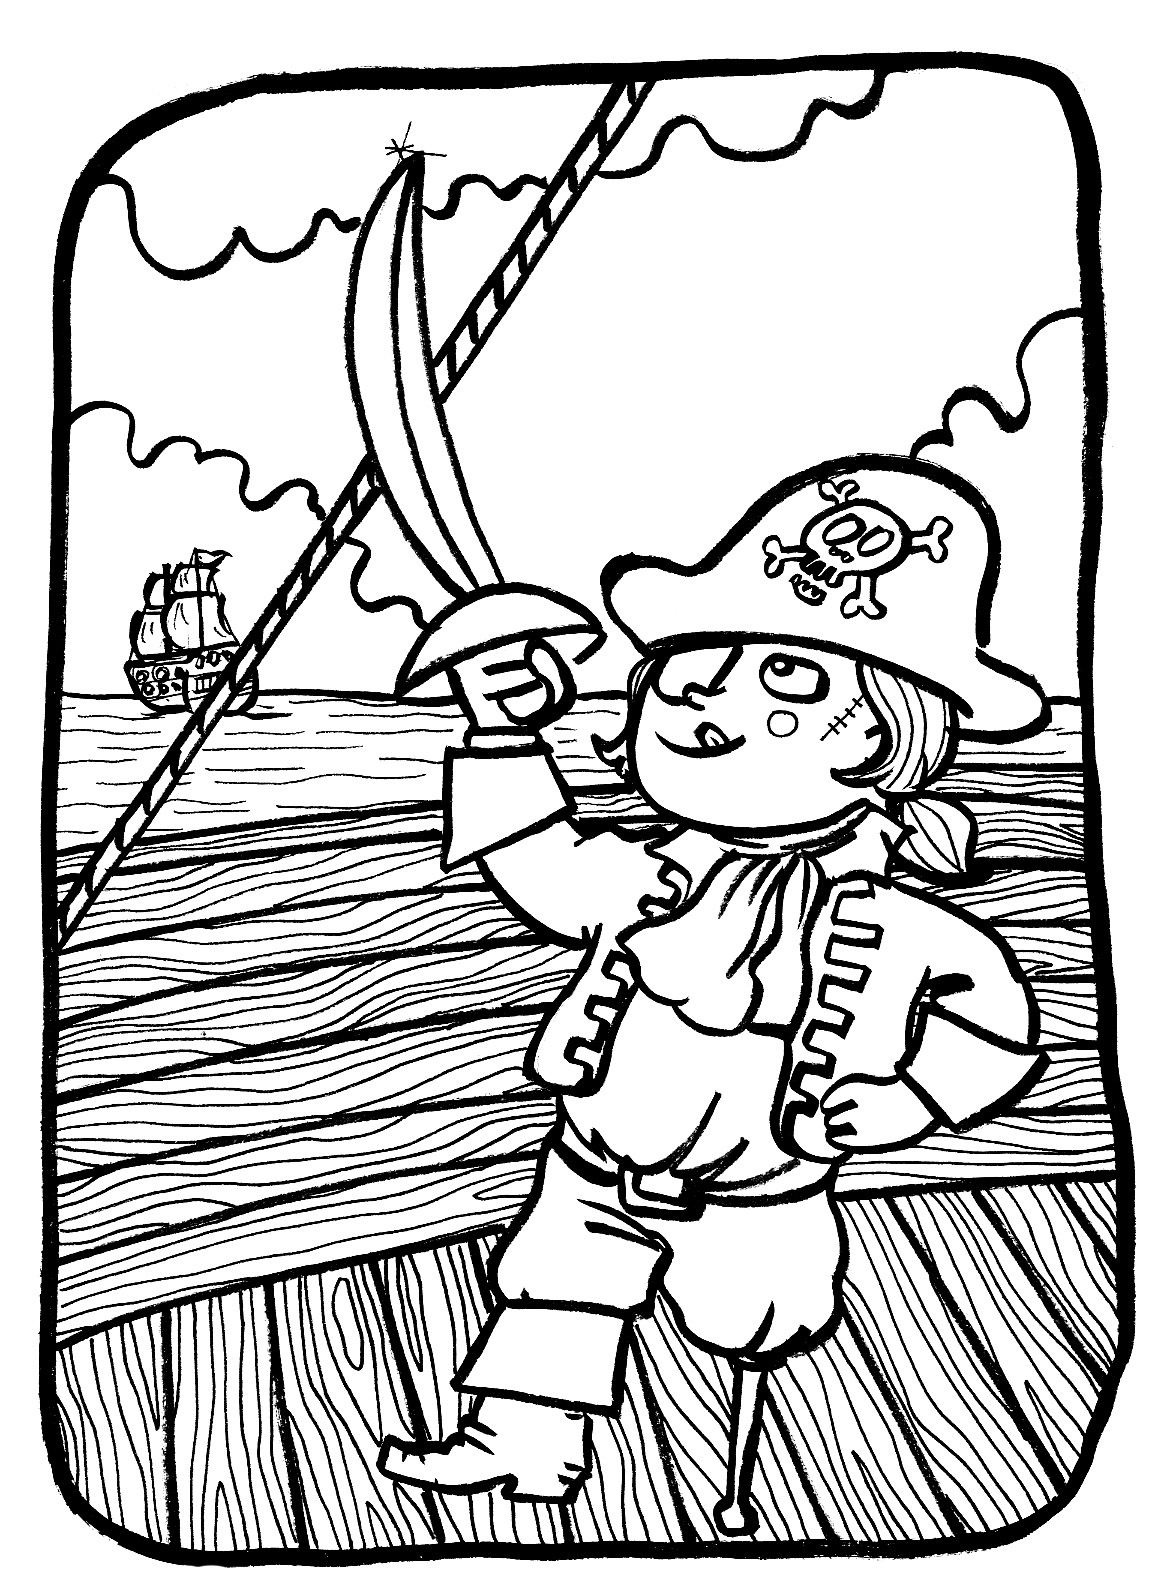 Printable Pirates coloring page to print and color for free